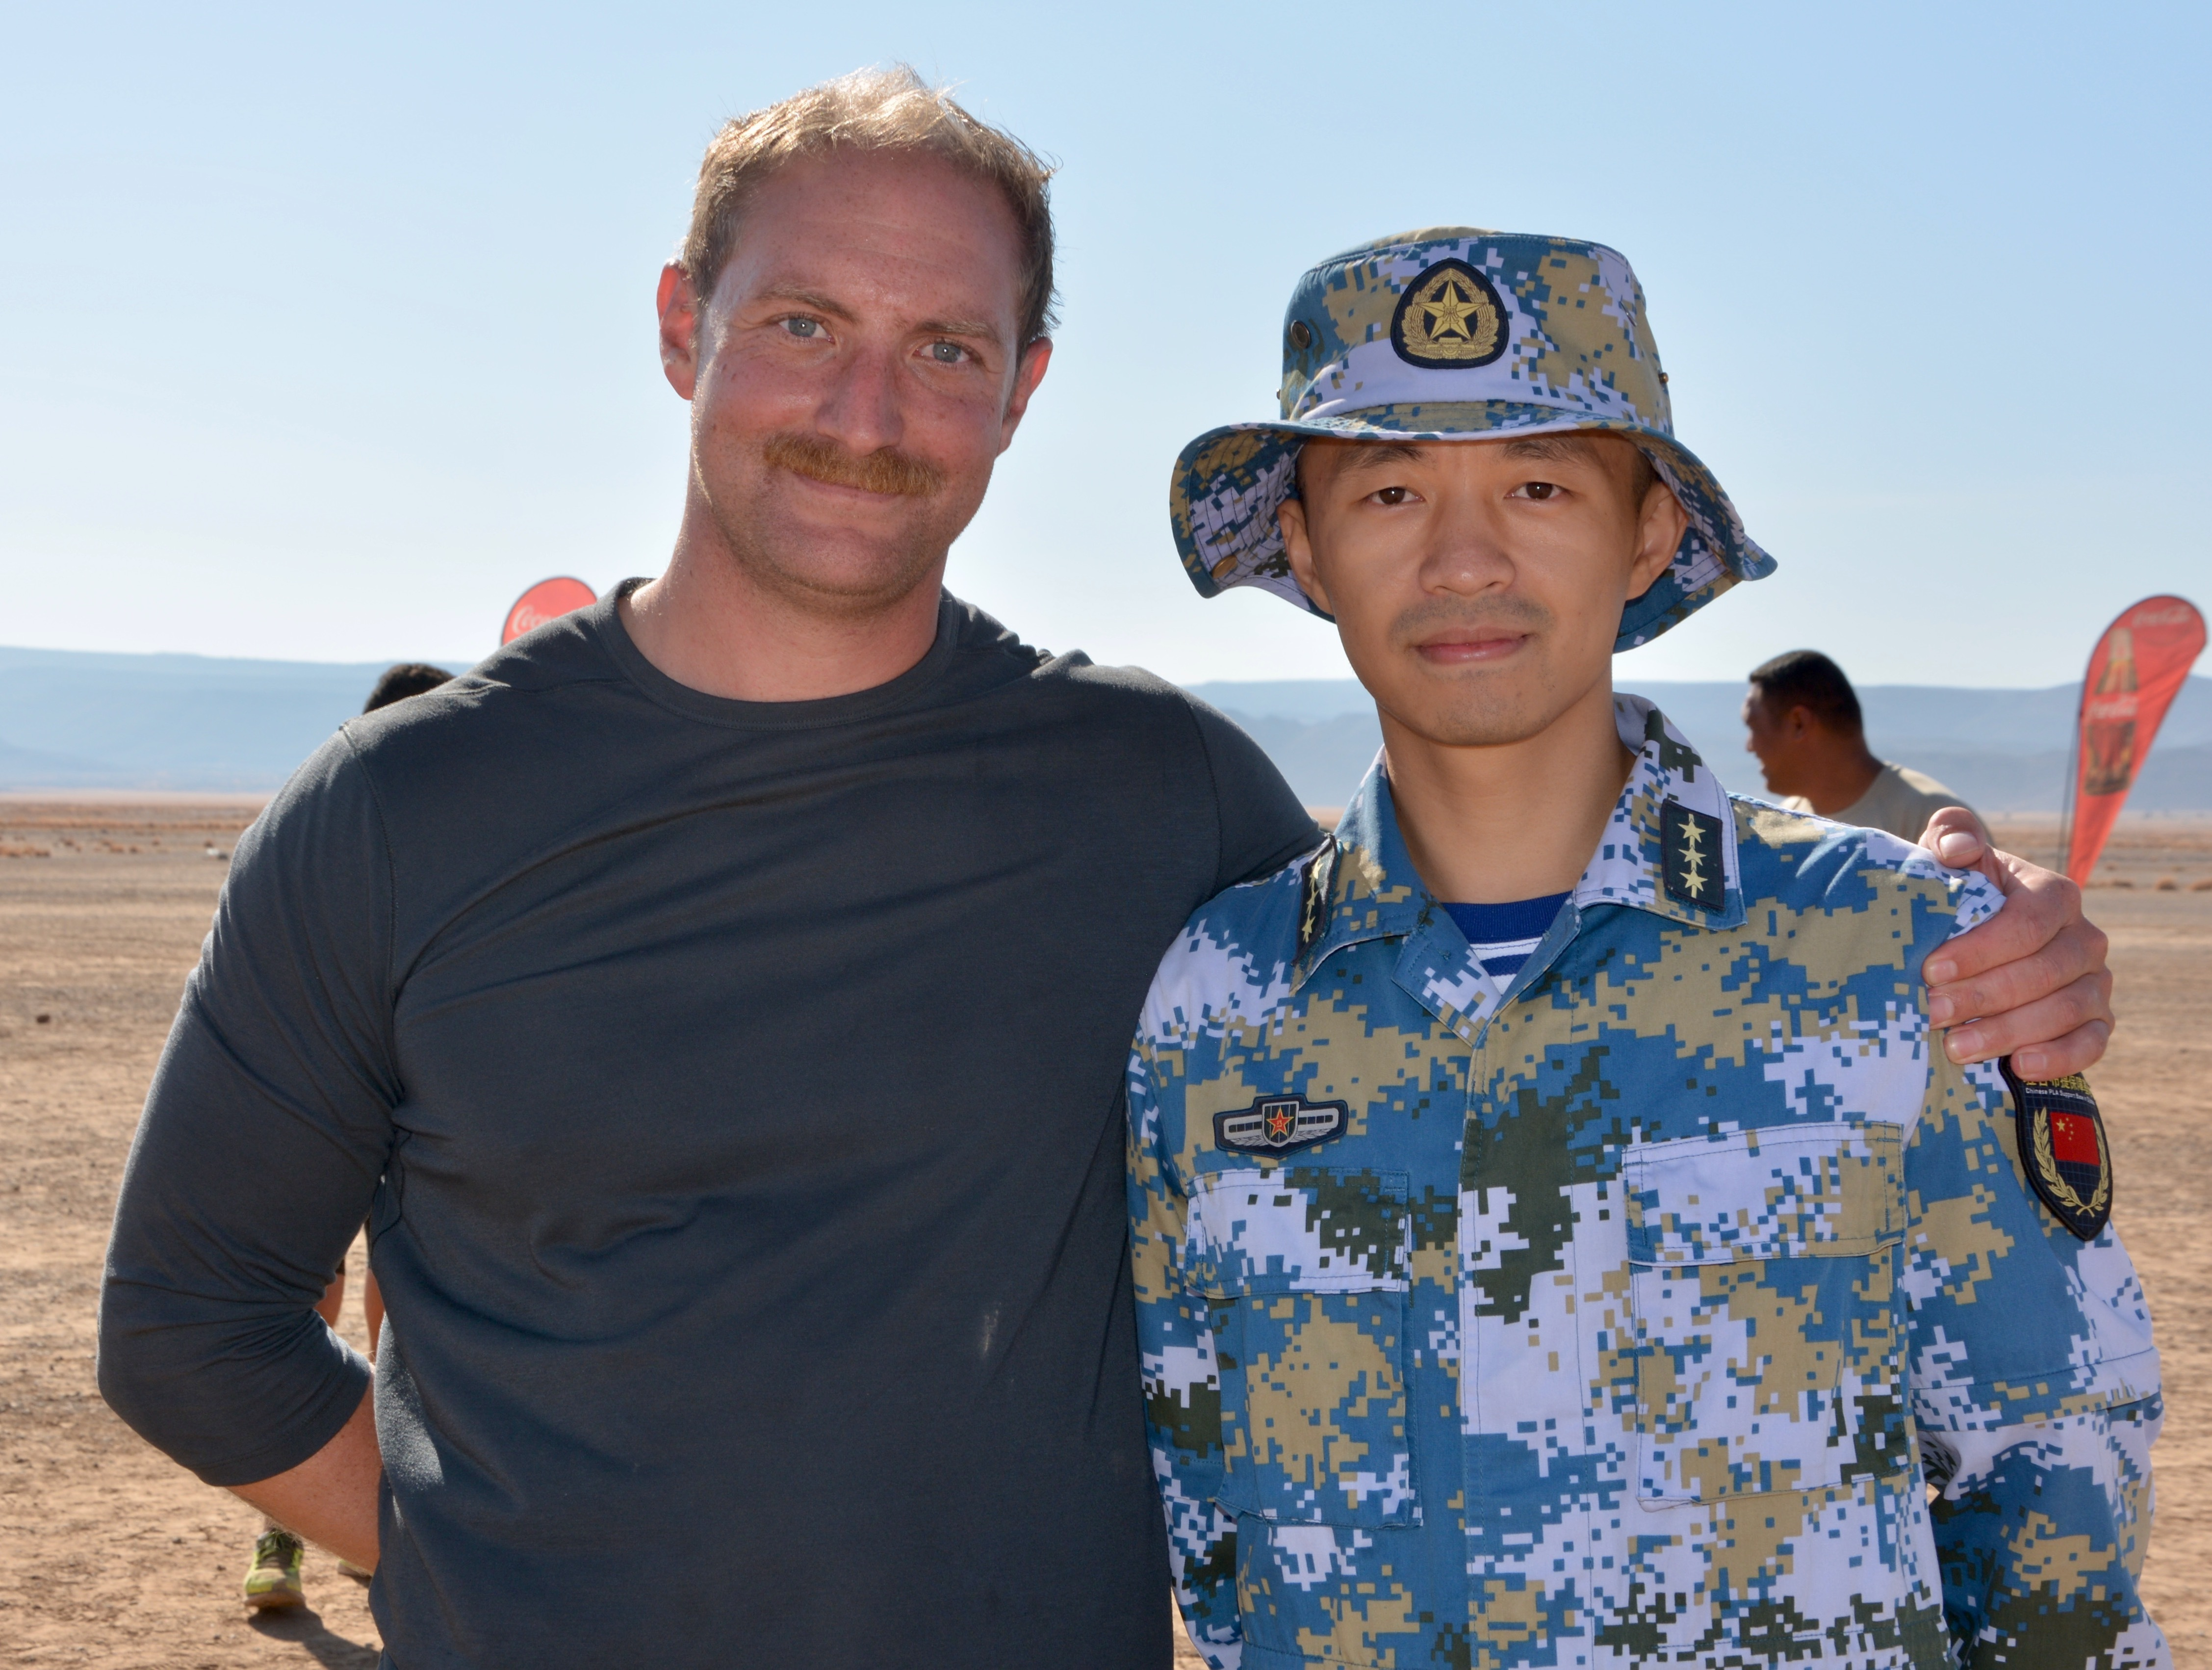 A U.S. Soldier poses for a photo with an officer in the Chinese military after exchanging patches. Nearly 200 members of Combined Joint Task Force – Horn of Africa ran alongside 2,500 Djiboutian, Chinese, and coalition service members and civilians during the 15k (9.3 mile) race across a stretch of Djibouti's Grand Bara Desert, Dec. 13. (U.S. Army photo by Capt. Olivia Cobiskey)